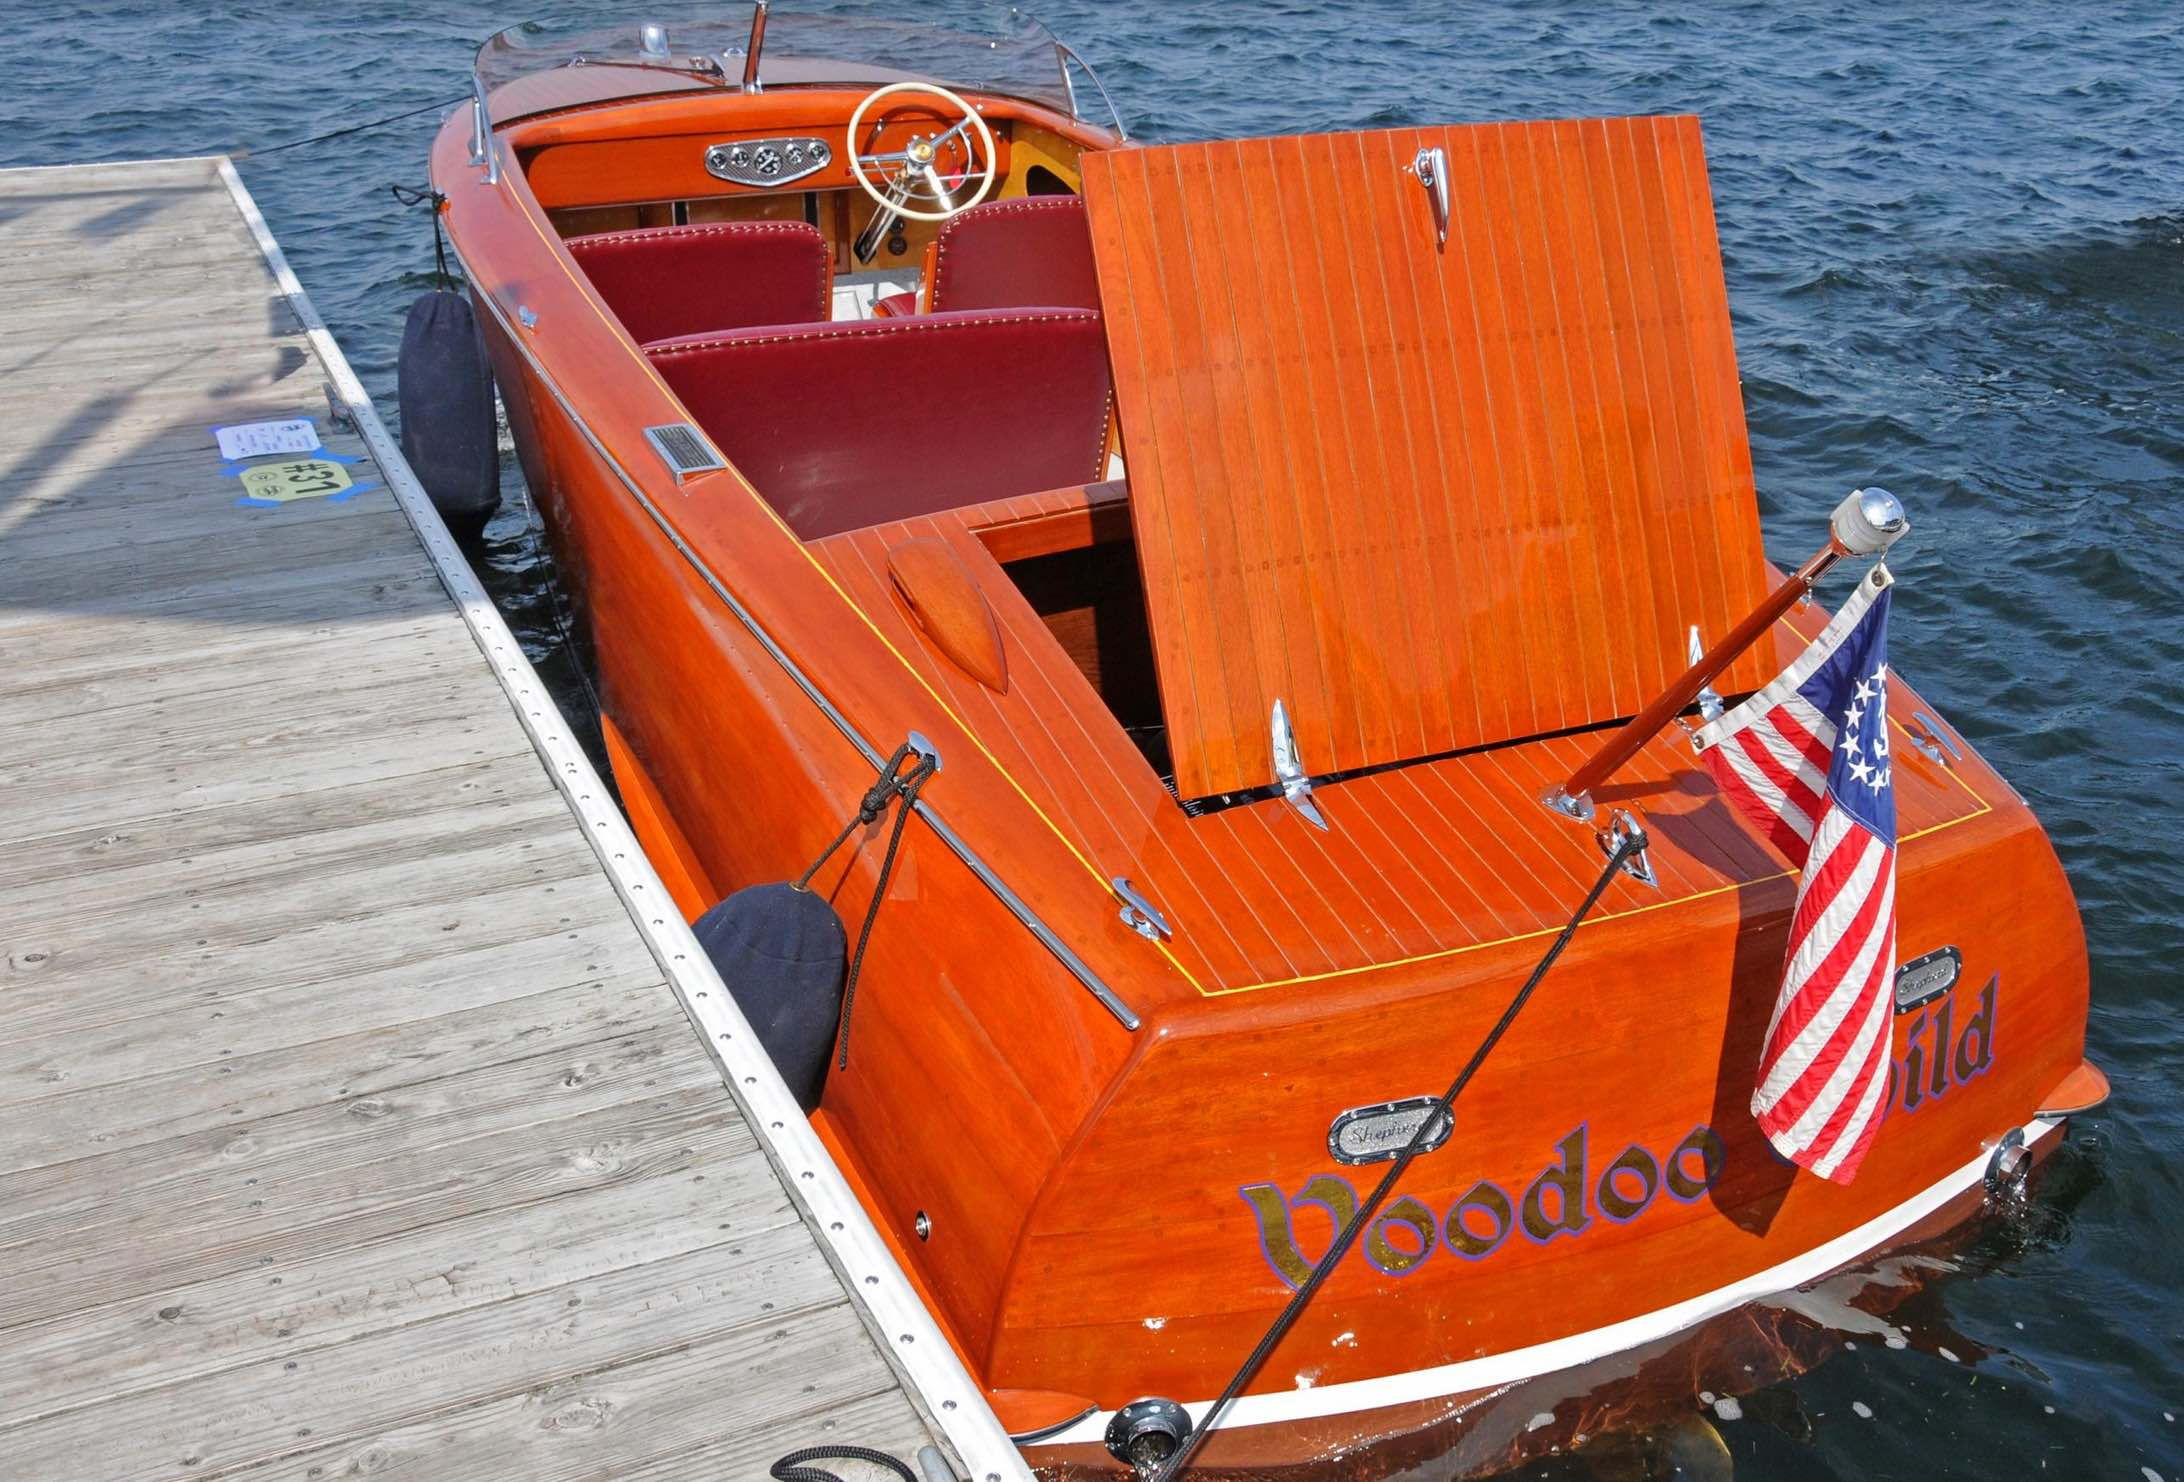 LCACBS 2018 Boat Show Voodoo Child.jpg